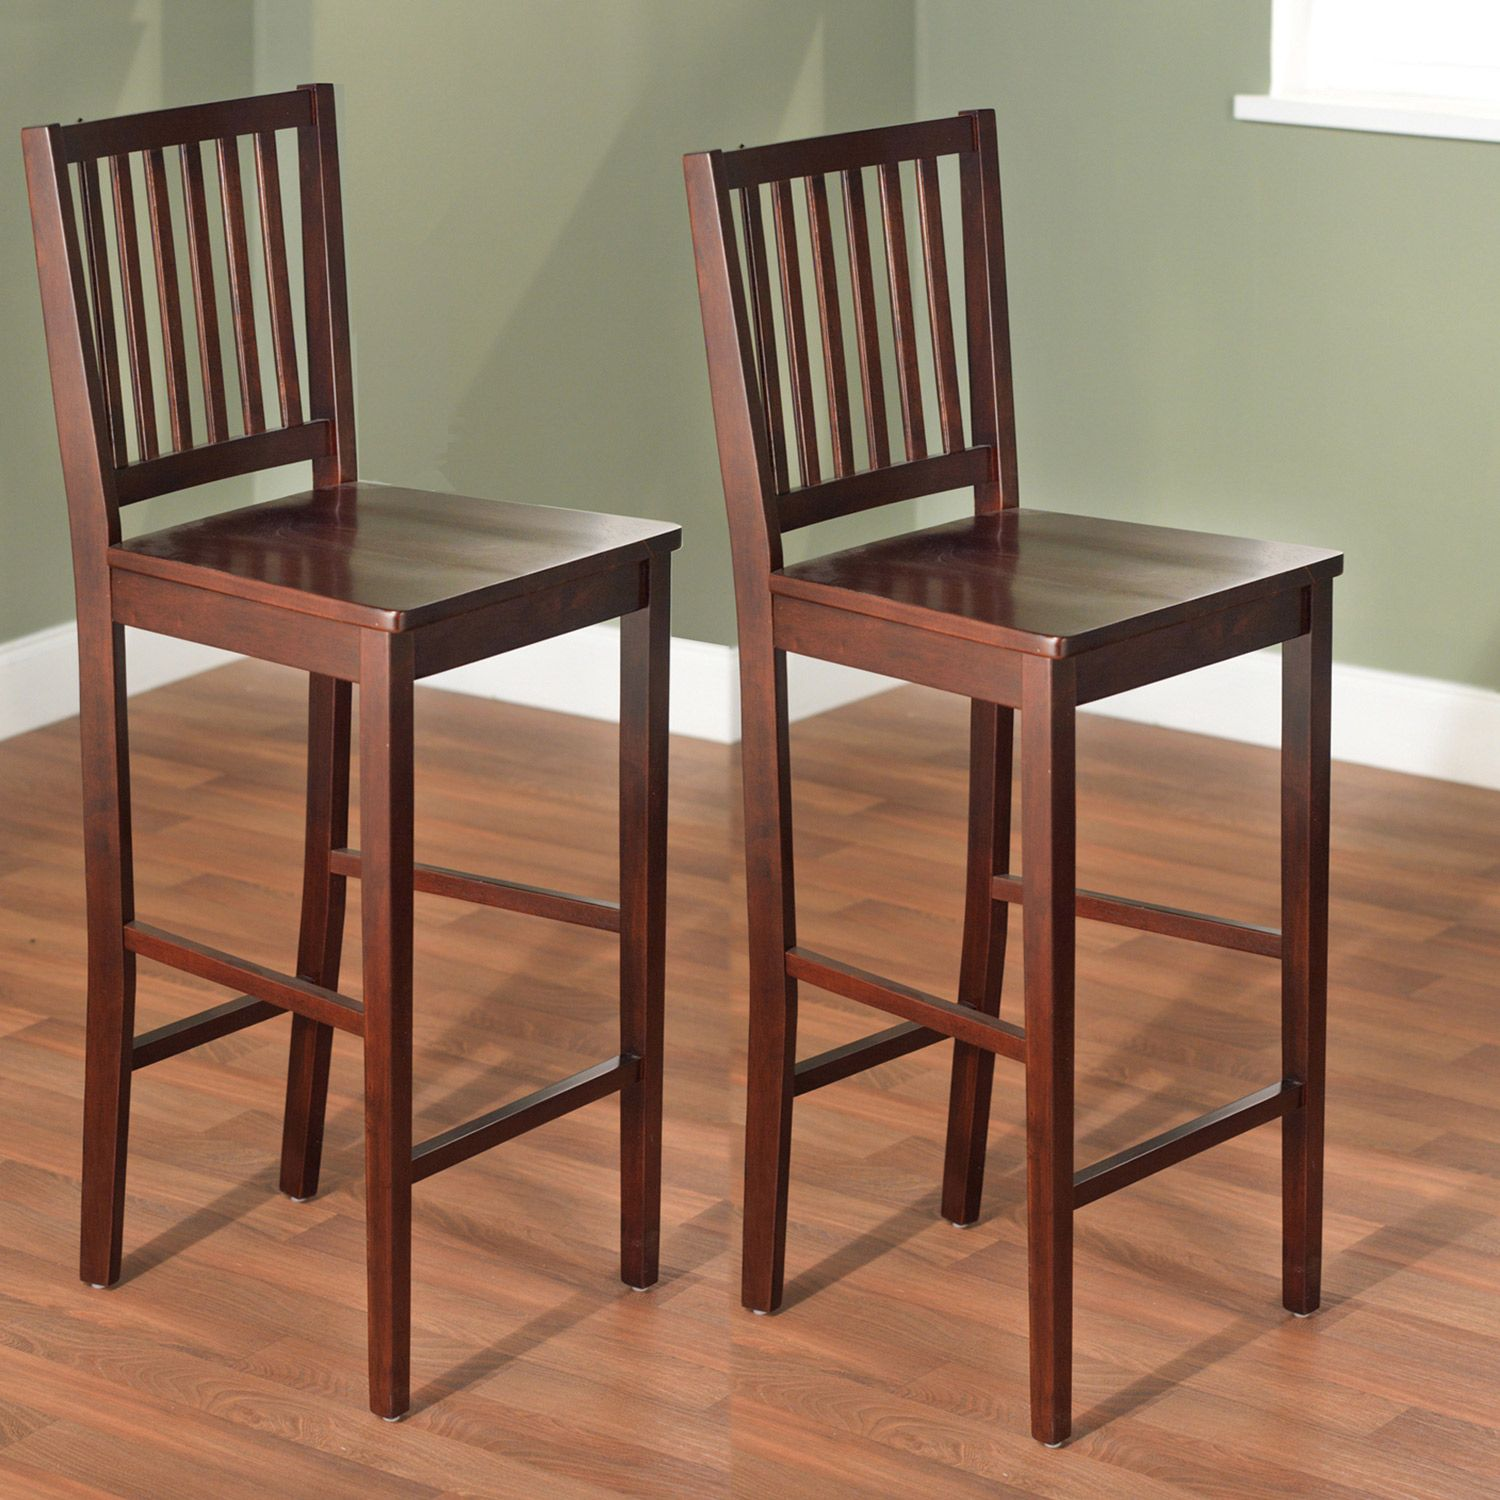 Simple Living 30-inch Shaker Bar Stools (Set of 2) by Simple Living ...